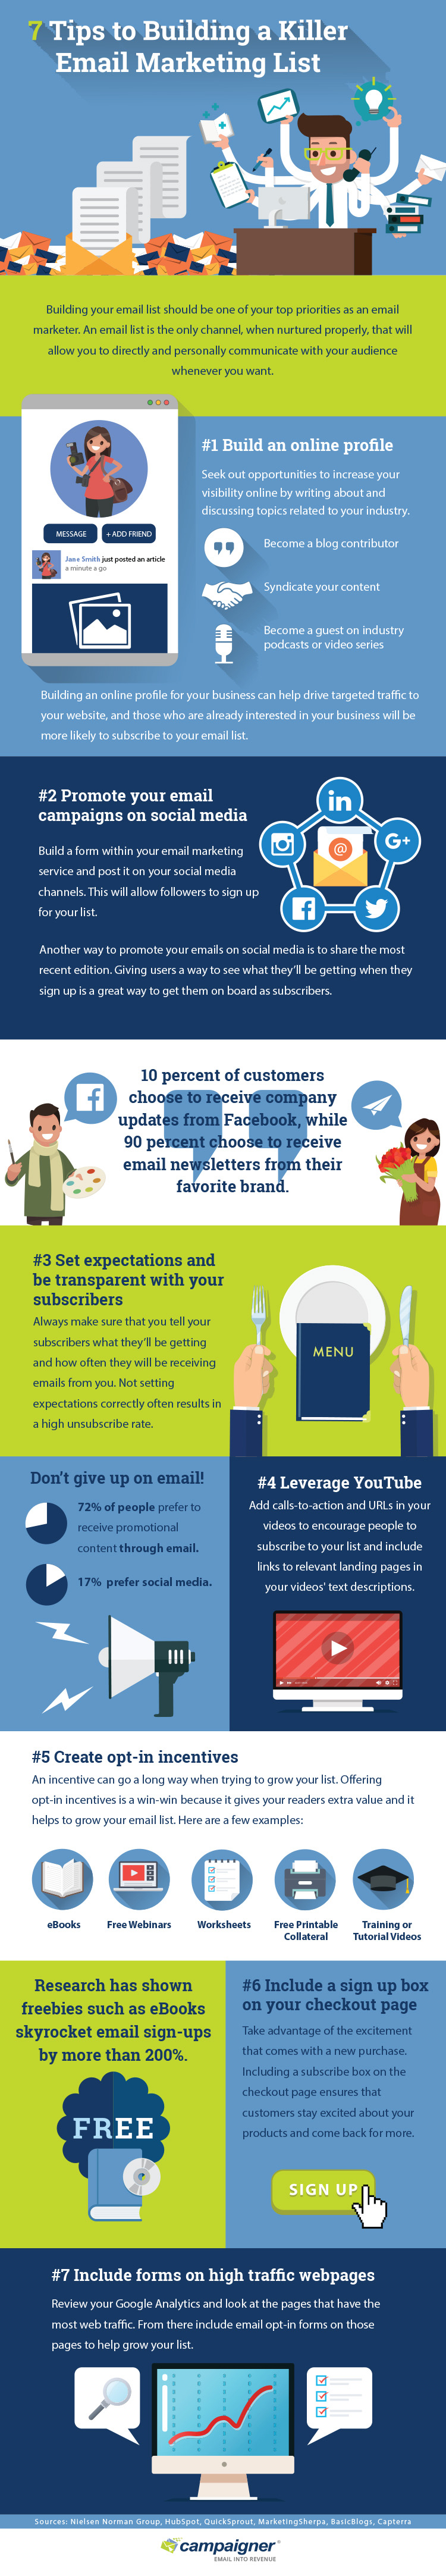 Infographic lists email list-building tips